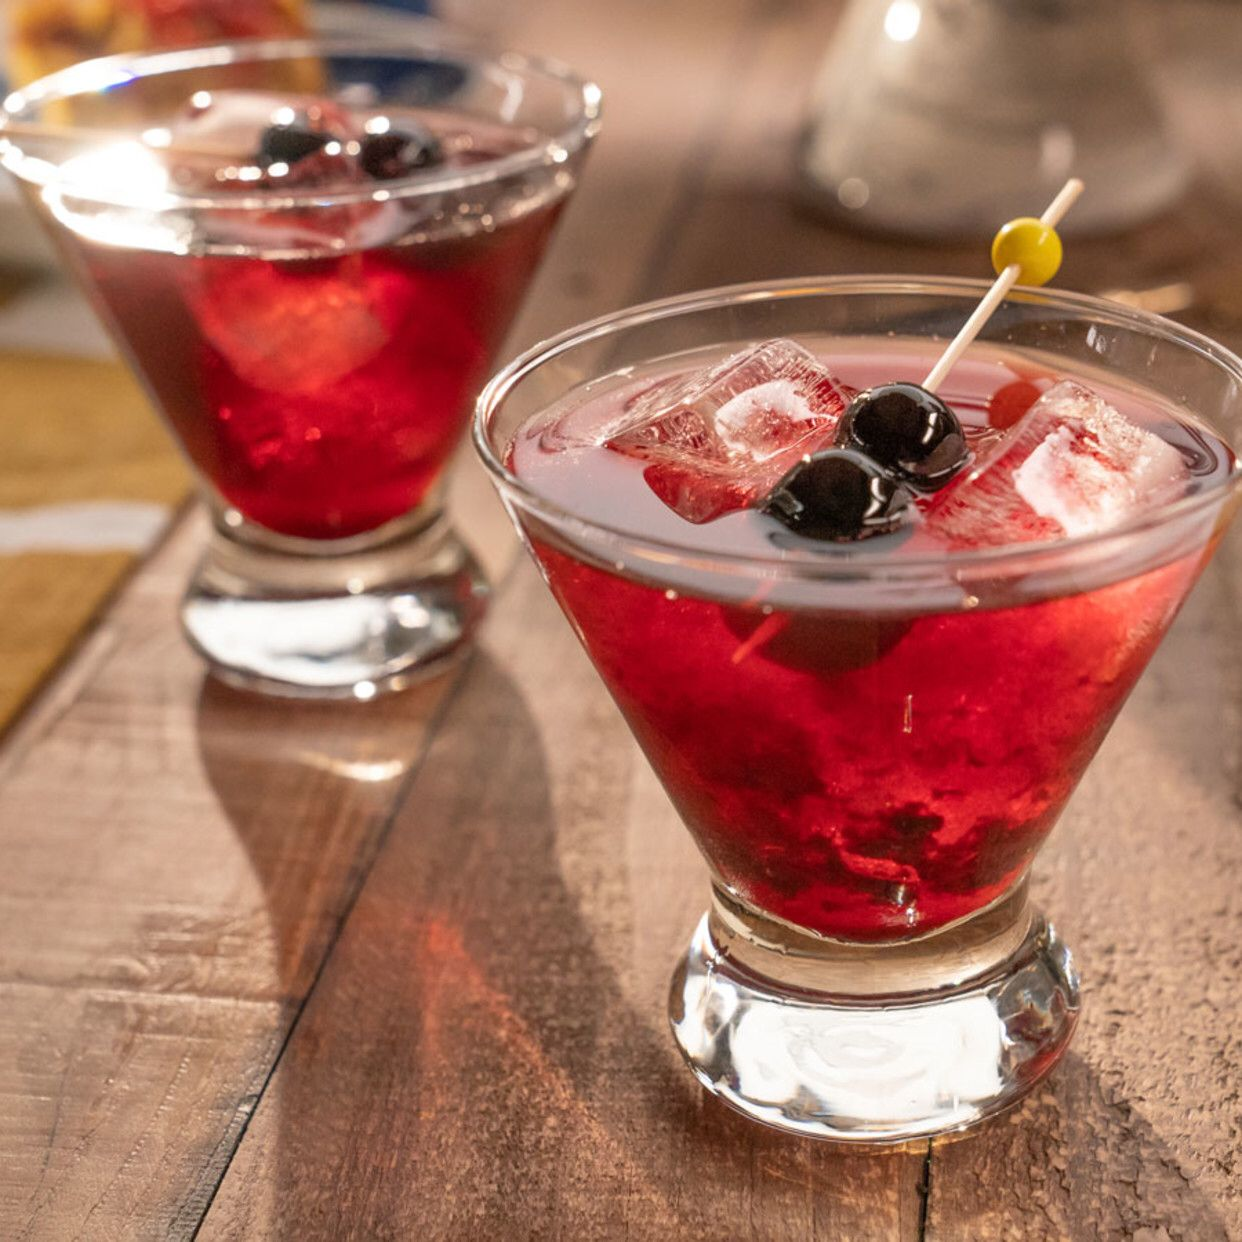 Black Cat Cocktail Recipe In 2020 Food Network Recipes Yummy Drinks Valerie S Home Cooking Recipes